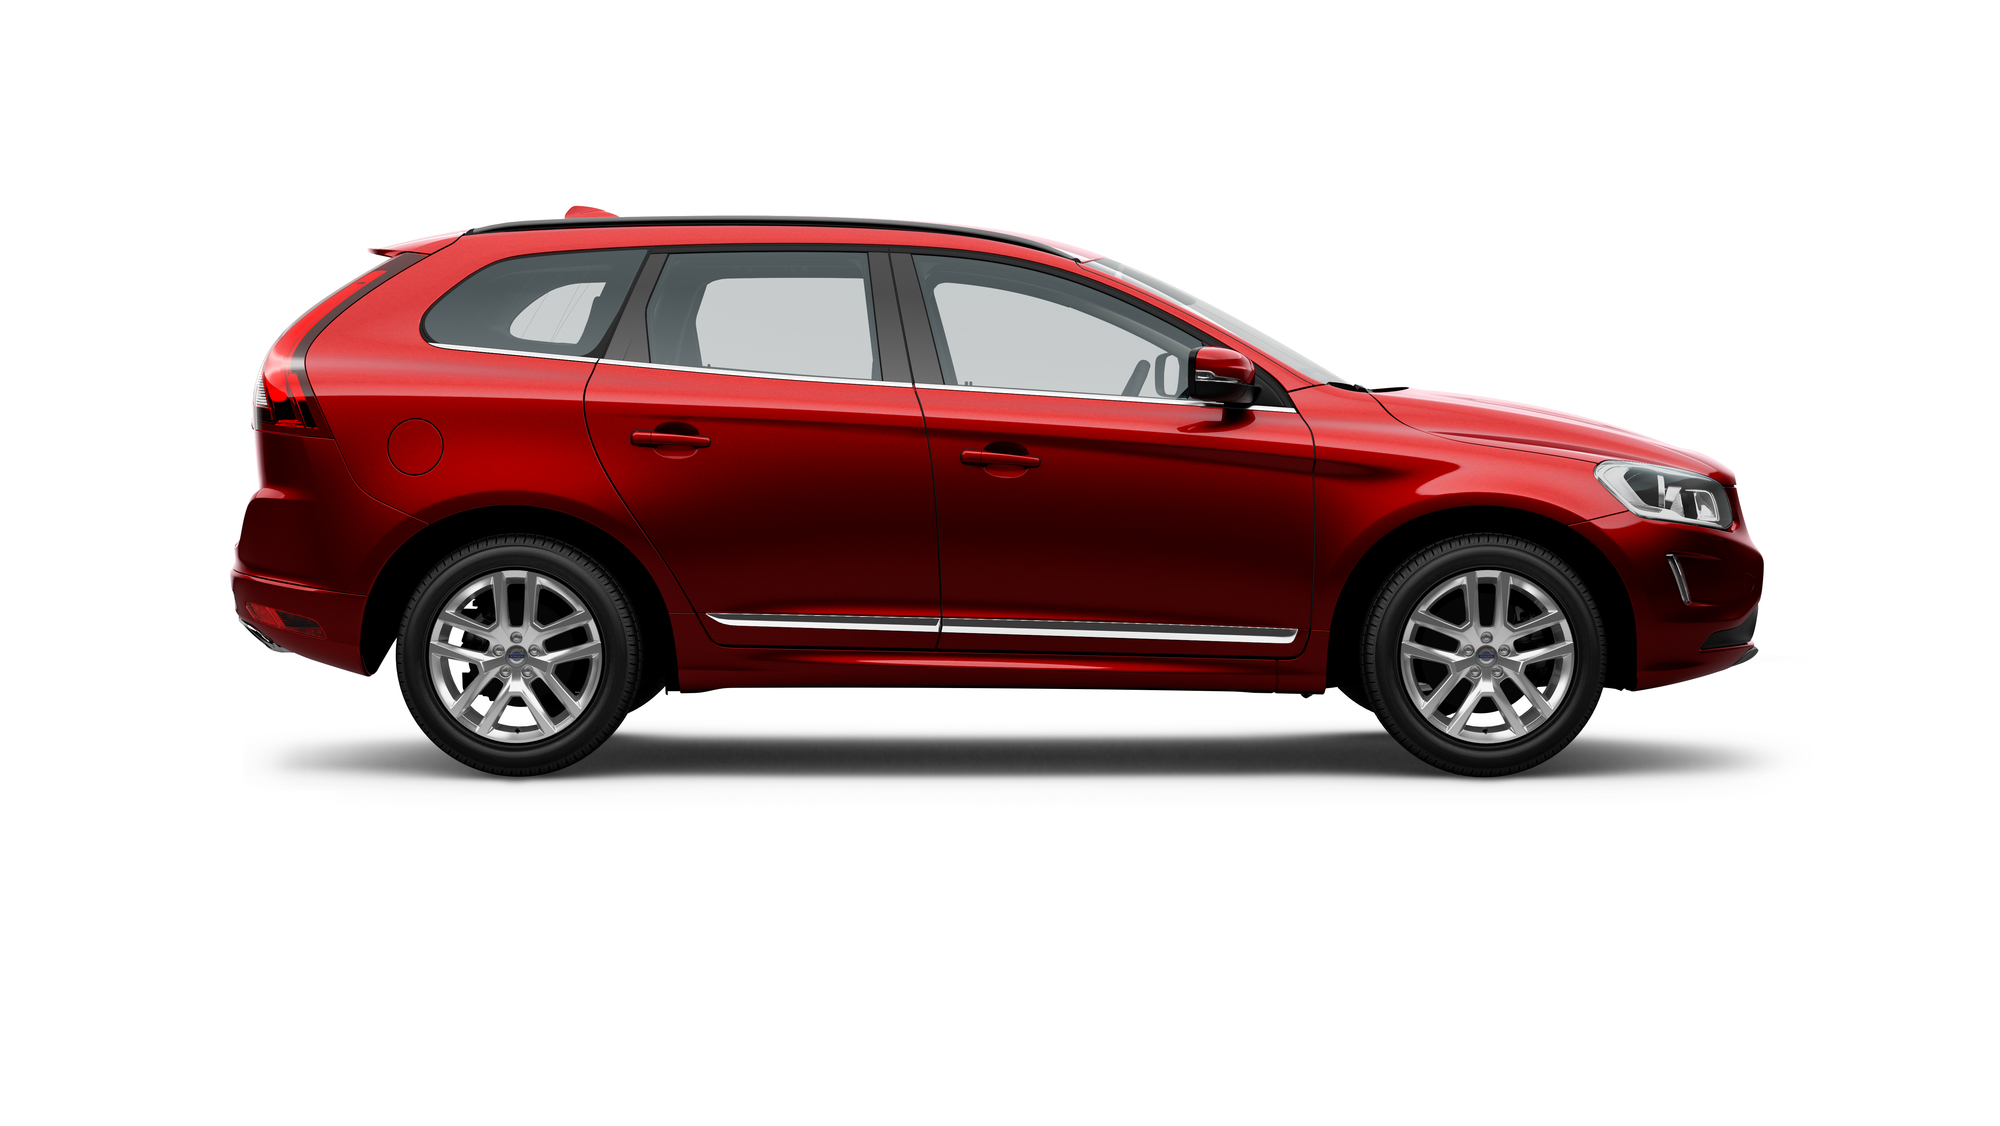 2017 Volvo Xc60 Red 200 Interior And Exterior Images